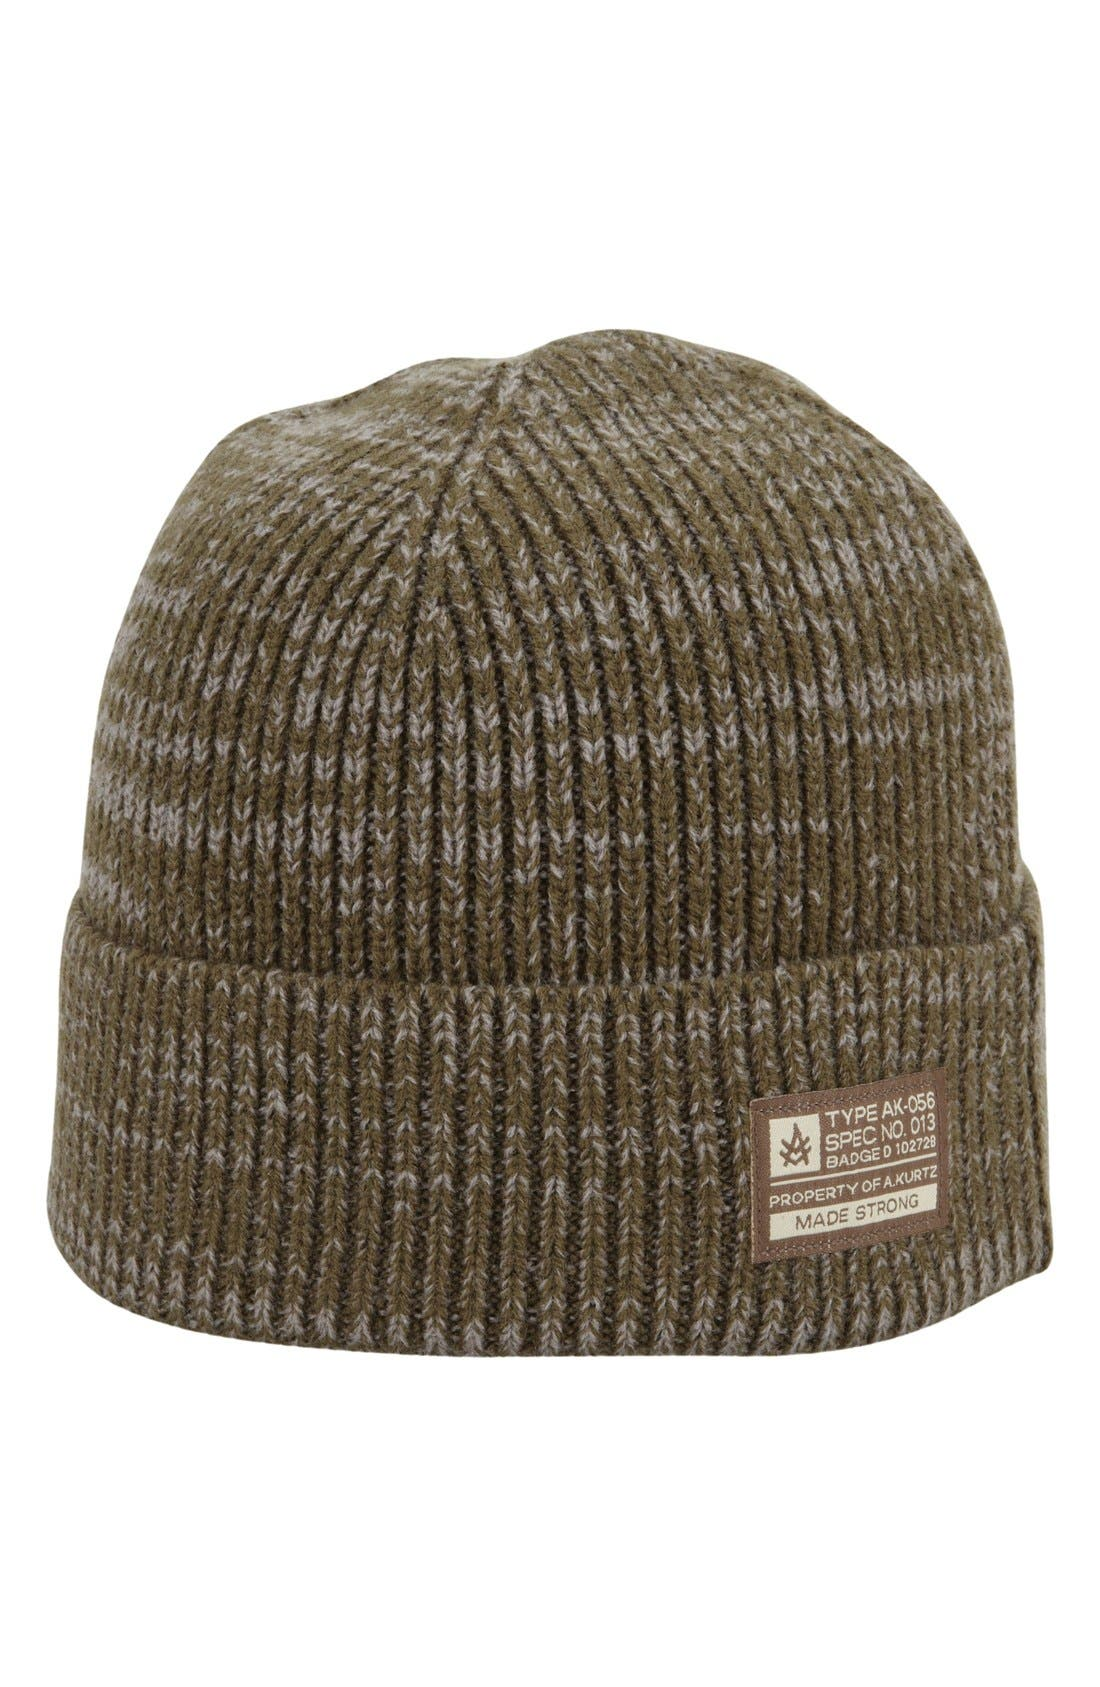 'Bounty' Knit Cap,                         Main,                         color, Military